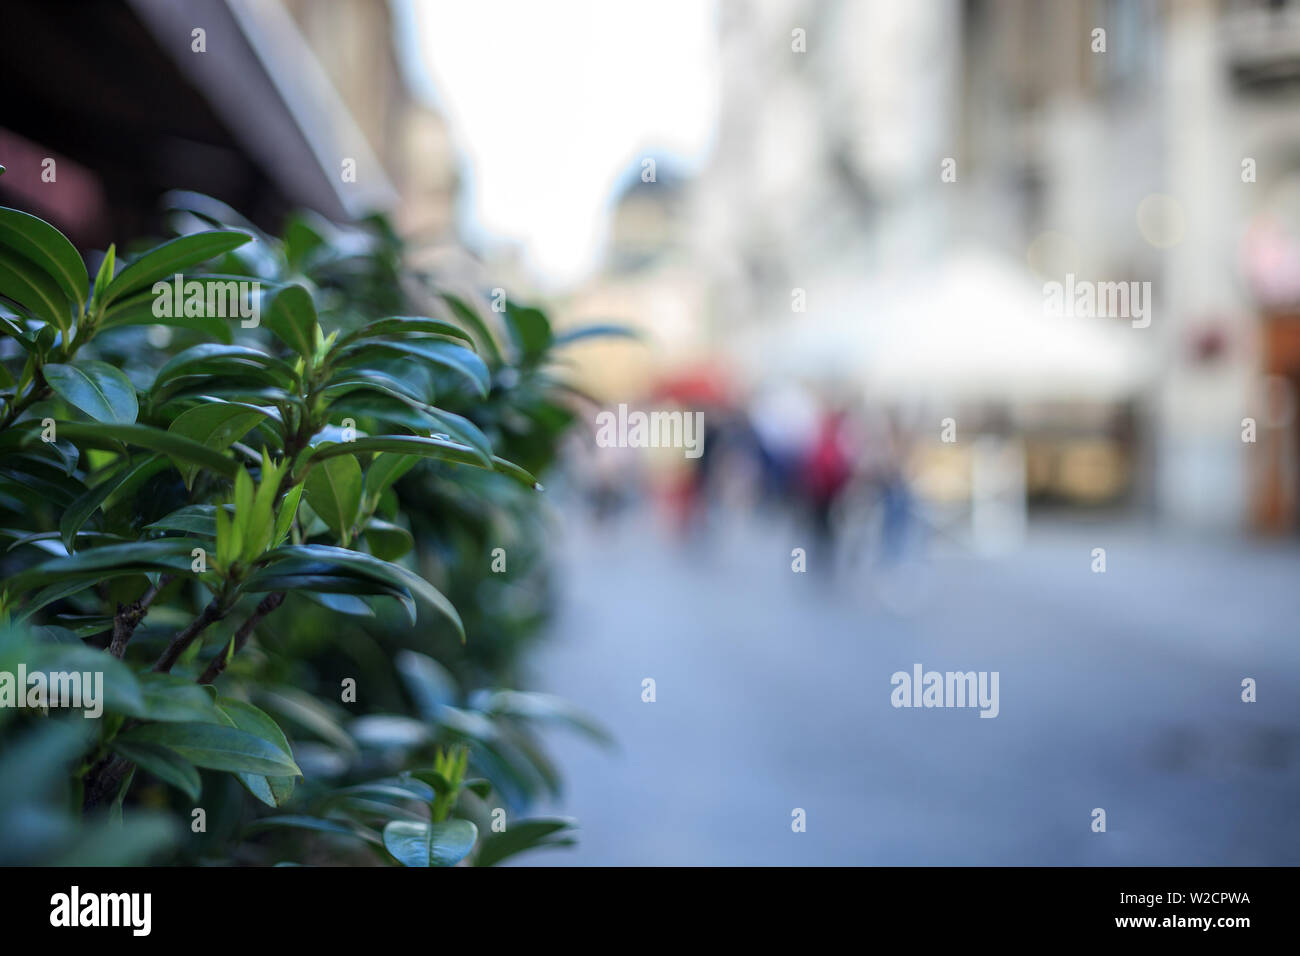 Blurred background of street and walking people. Defocused city life - Stock Image